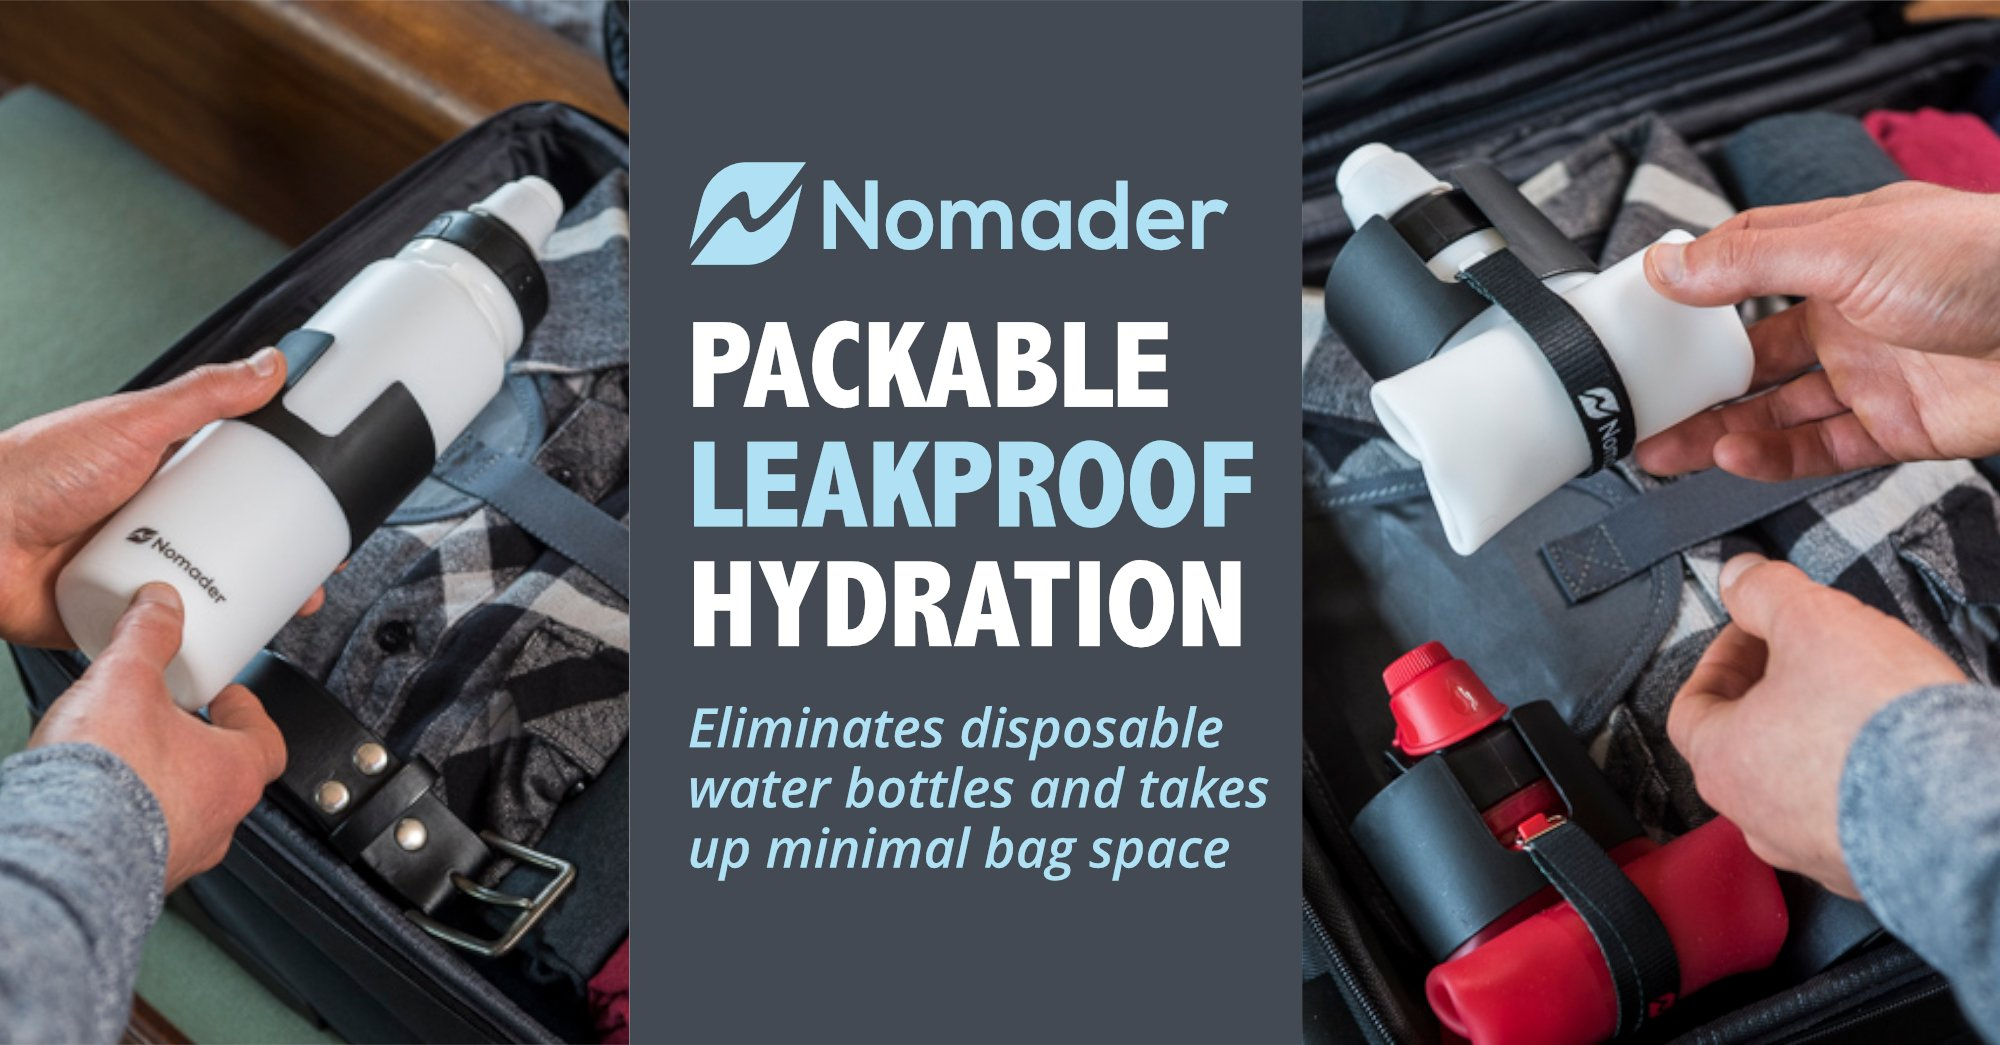 Collapsible Water Bottle for Travel Hydration - Nomader